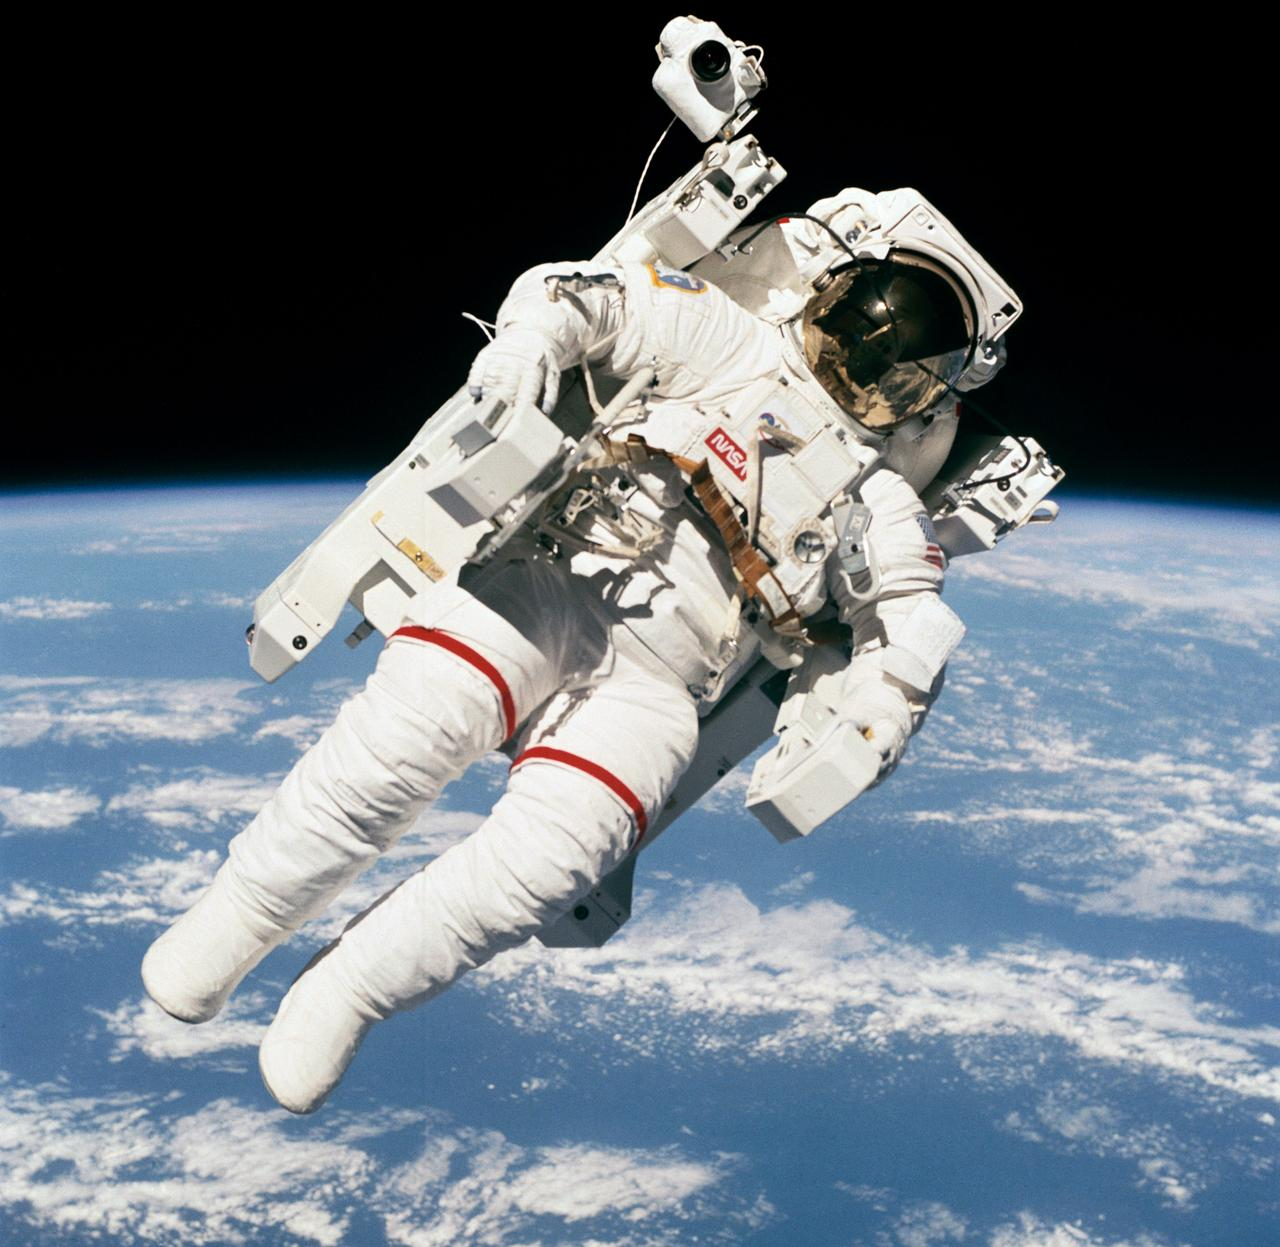 Astronaut Bruce McCandless using the MMU.